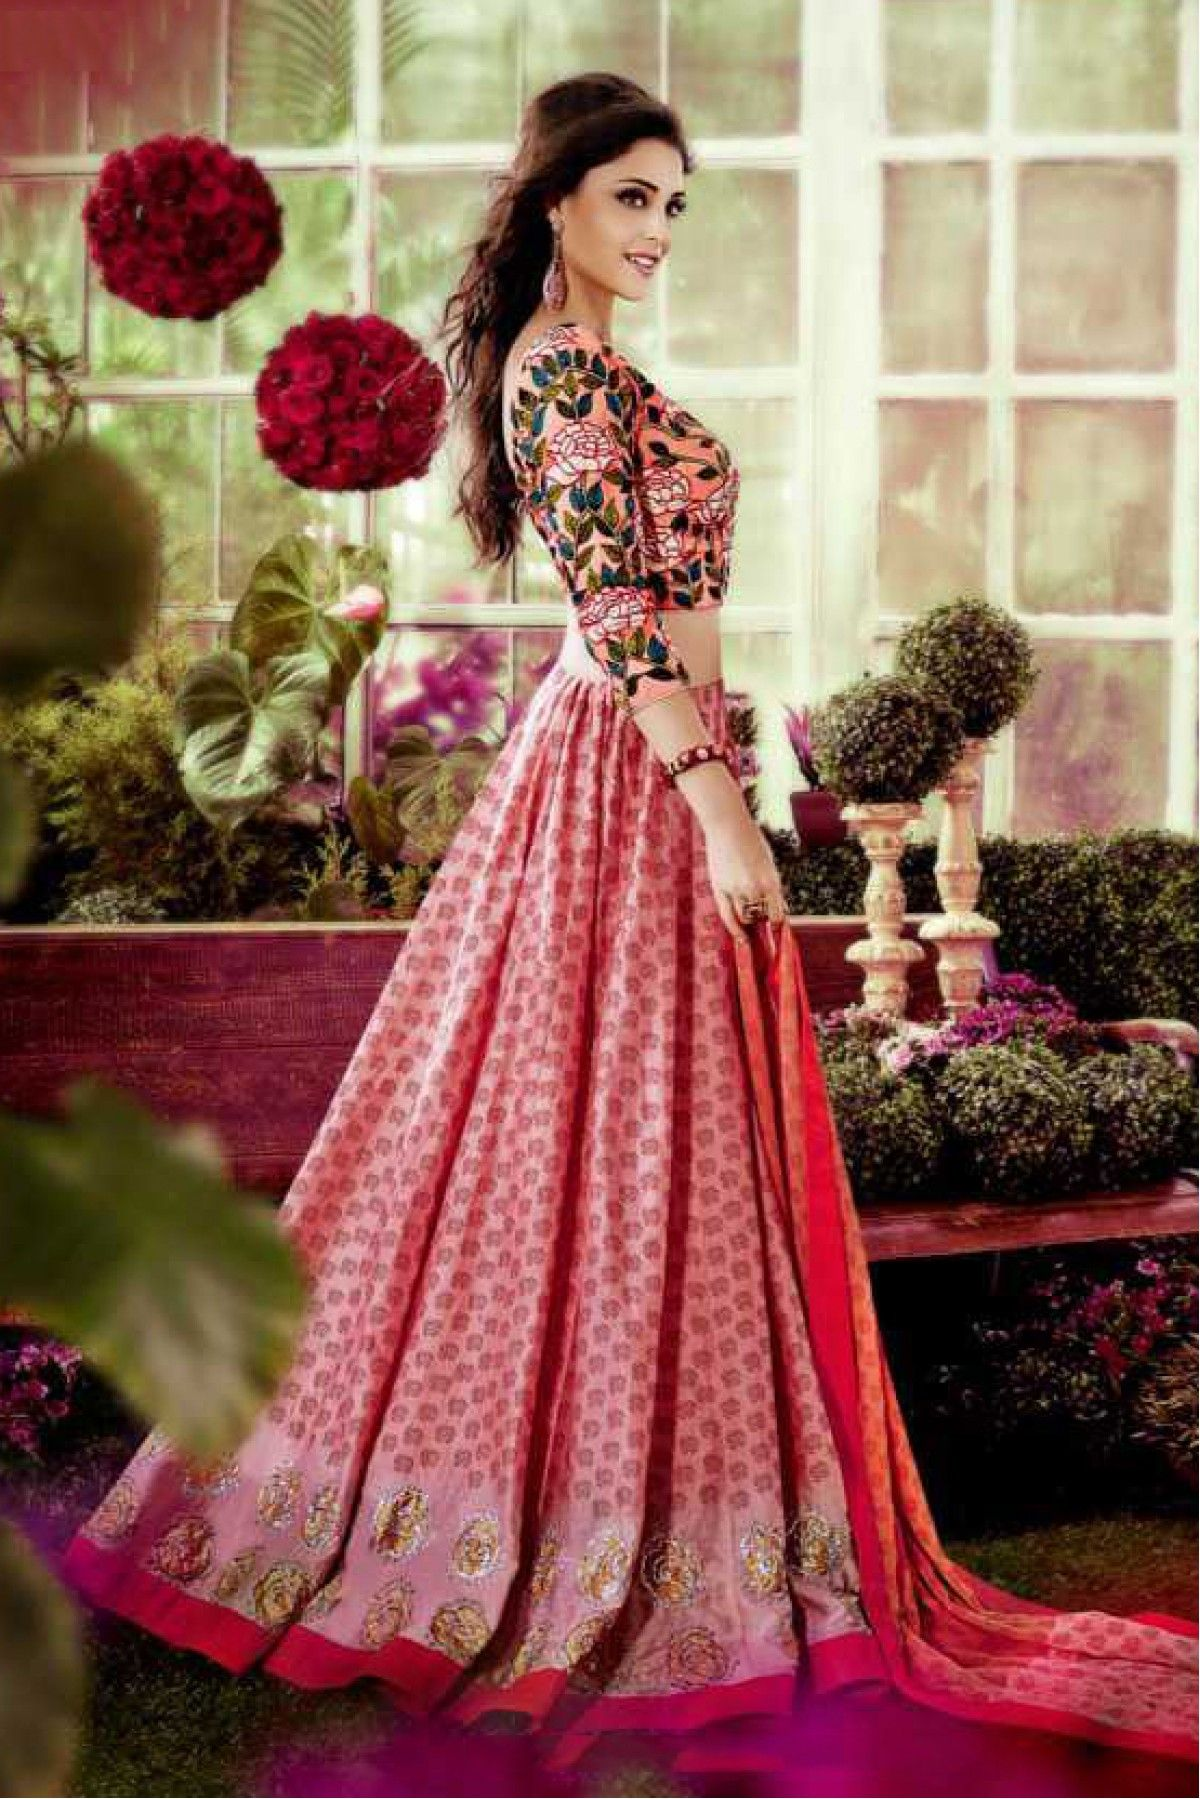 20d4685d52 The Stylish And Elegant Lehenga Choli In Peach Colour Looks Stunning And  Gorgeous With Trendy And Fashionable Printed,Embroidery . The Silk Fabric  Party ...